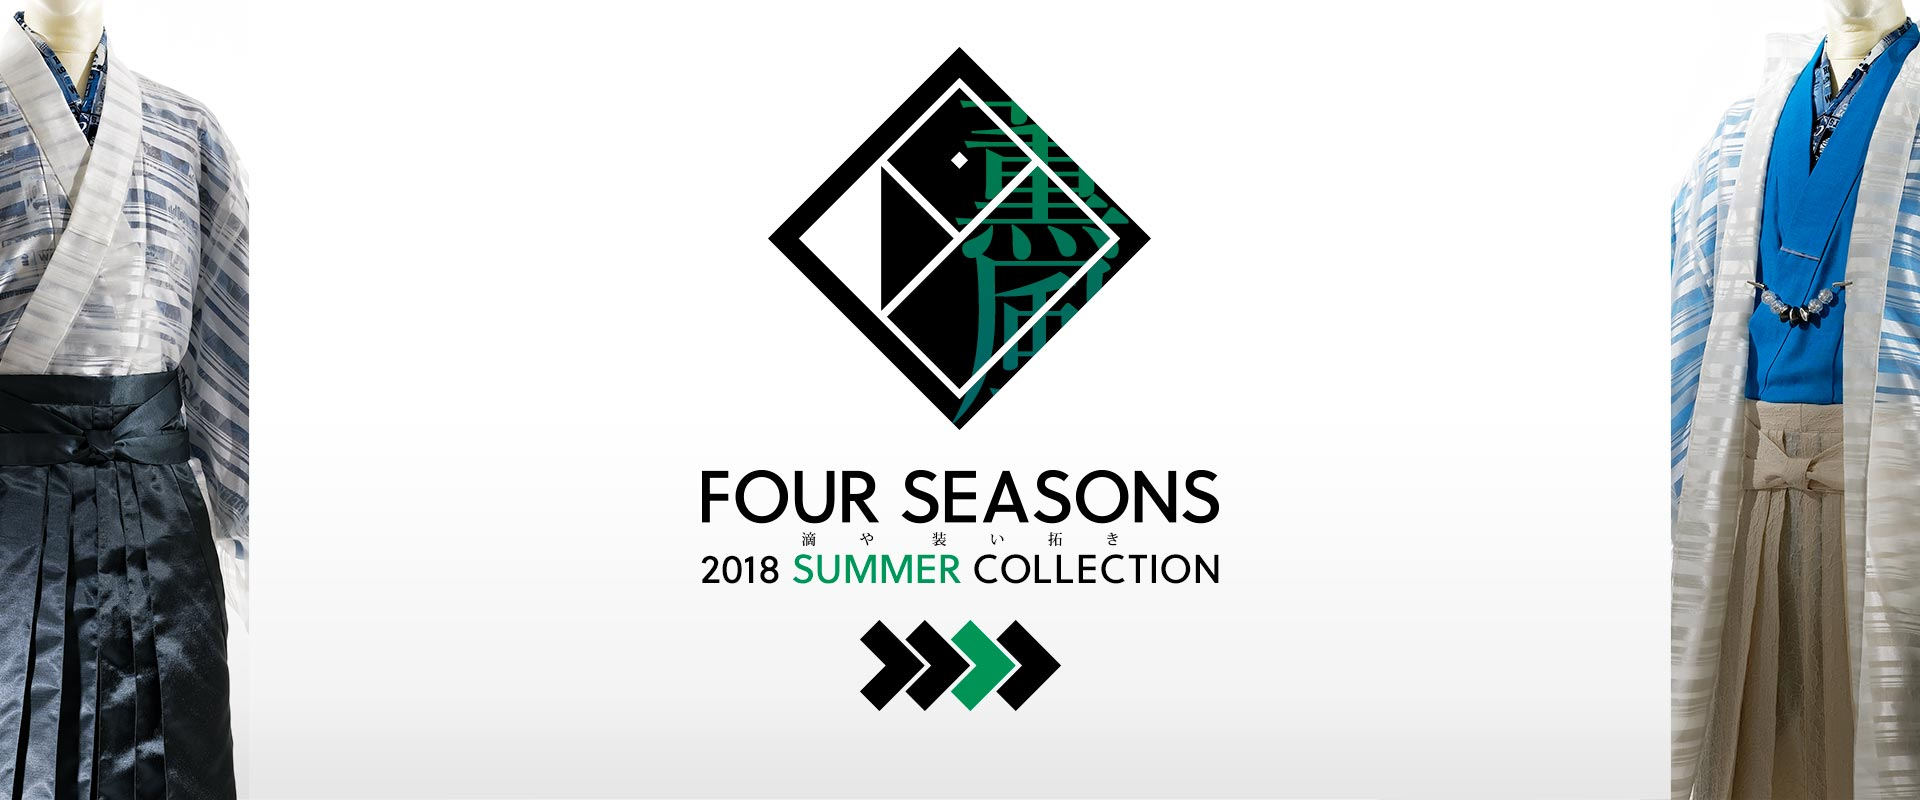 FOUR SEASONS 2018 SUMMER COLLECTION